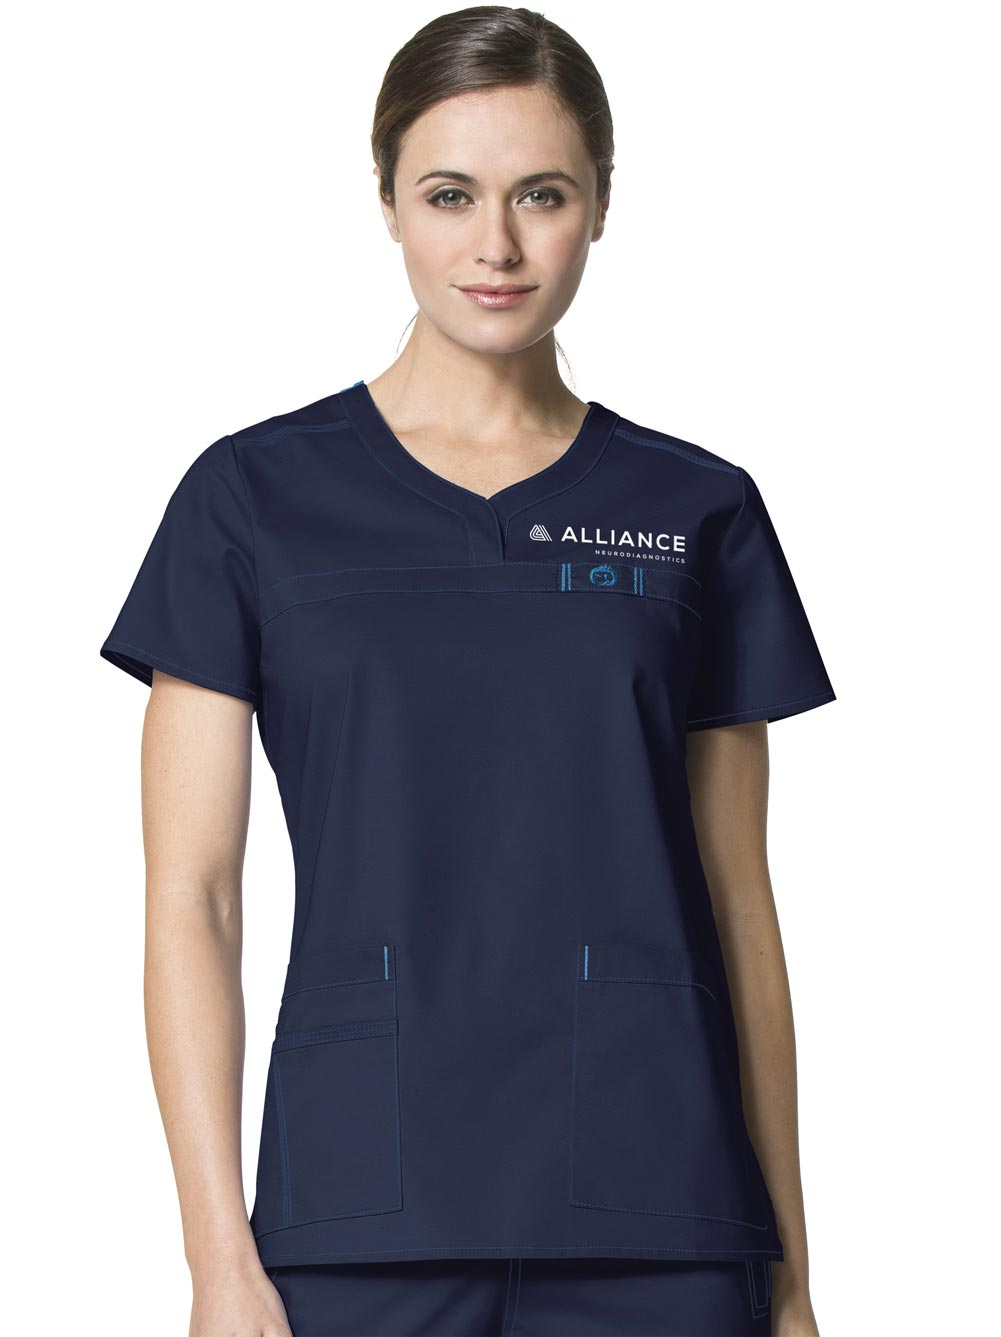 WonderFLEX 'Patience' Curved Neck Top w/ Alliance Logo